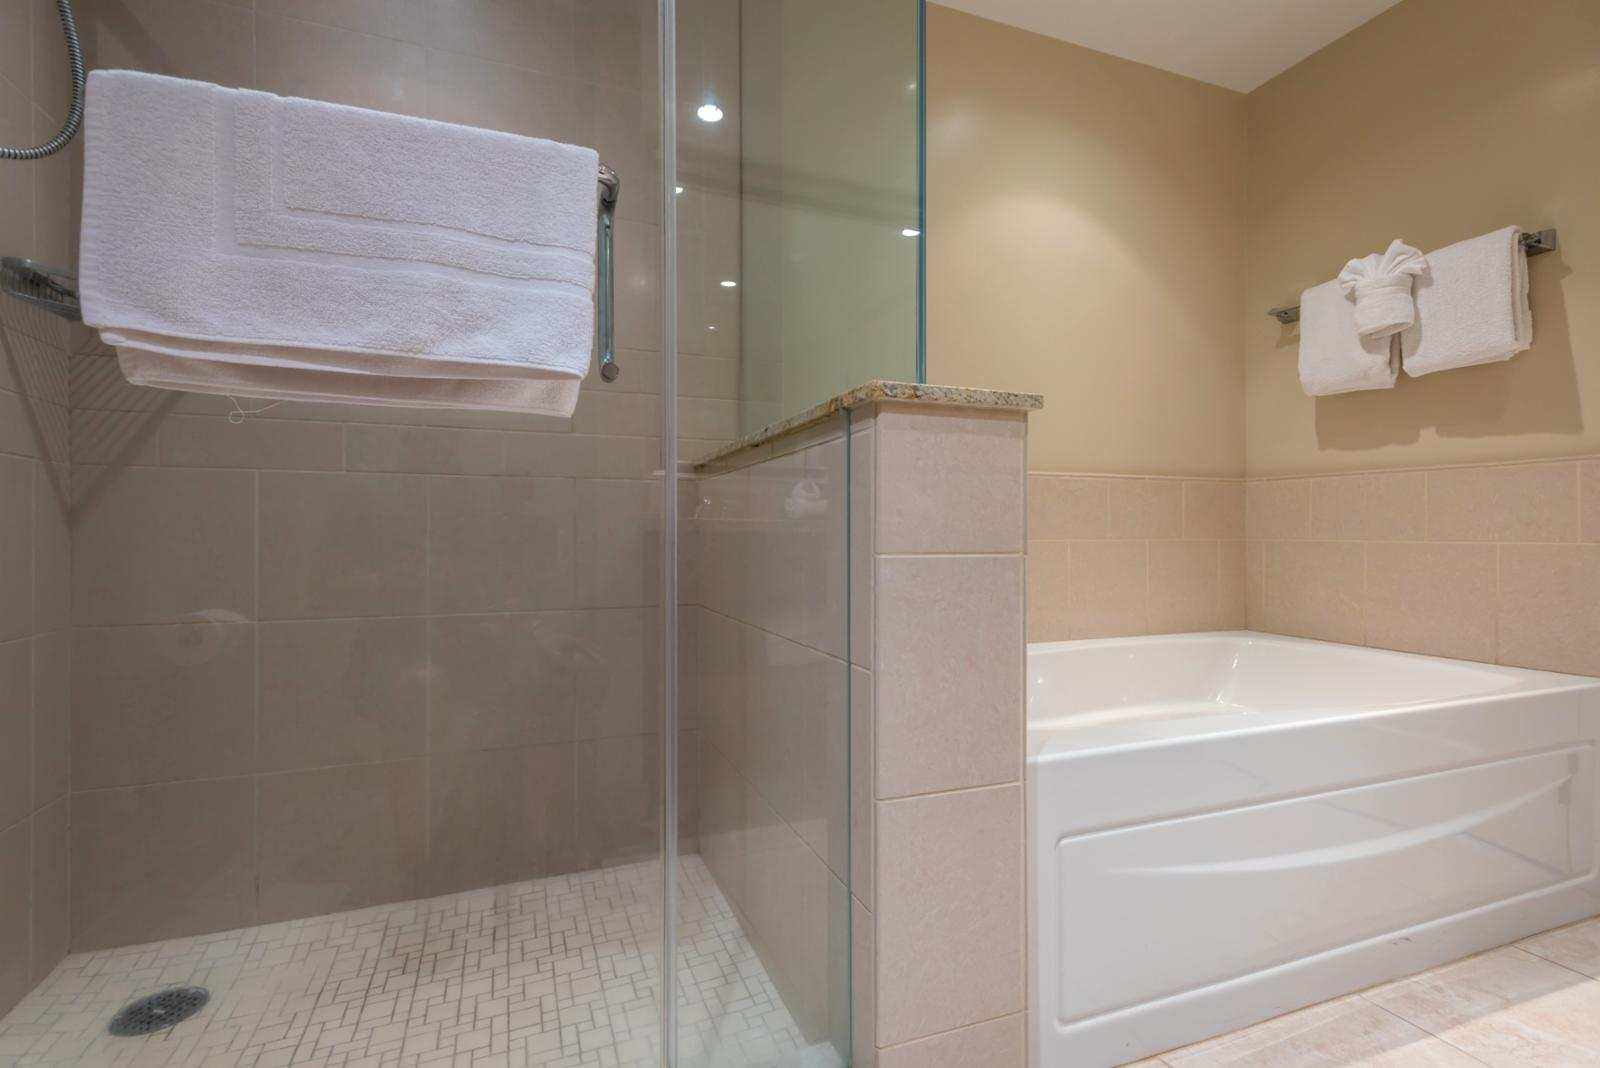 Floor to ceiling glass shower with adjacent tub for soaking